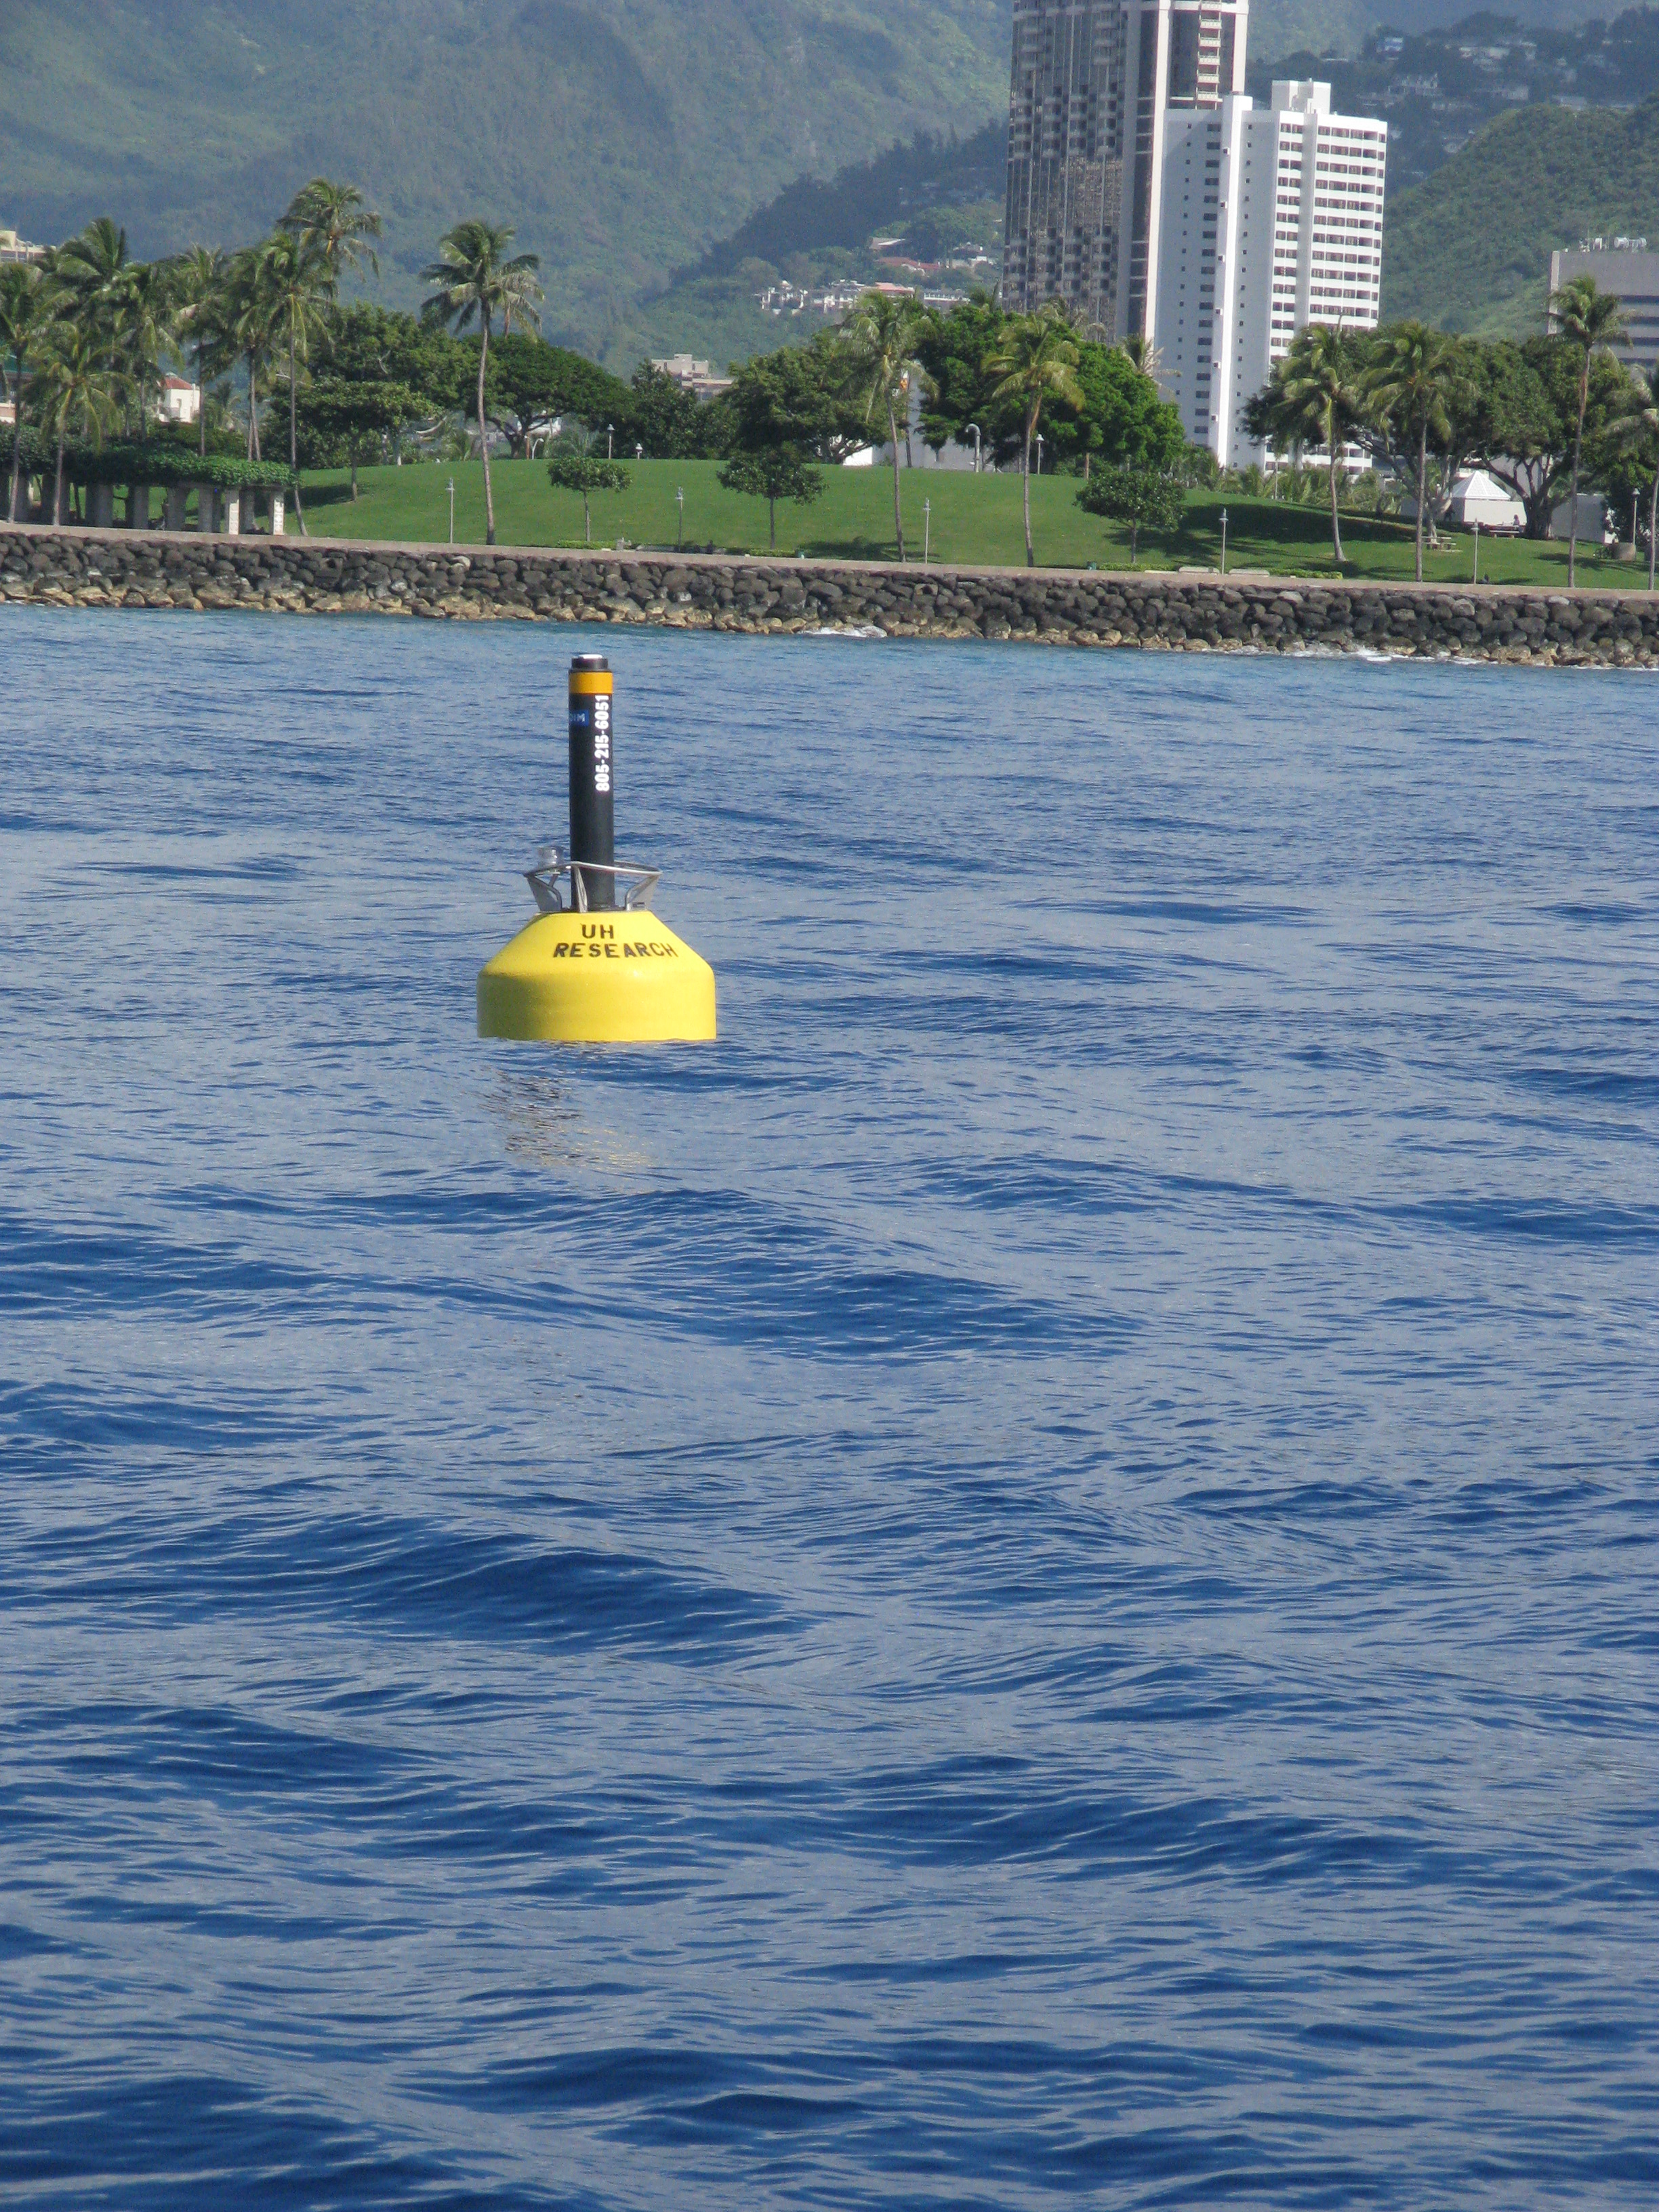 Profiling mooring off the west coast of Oʻahu